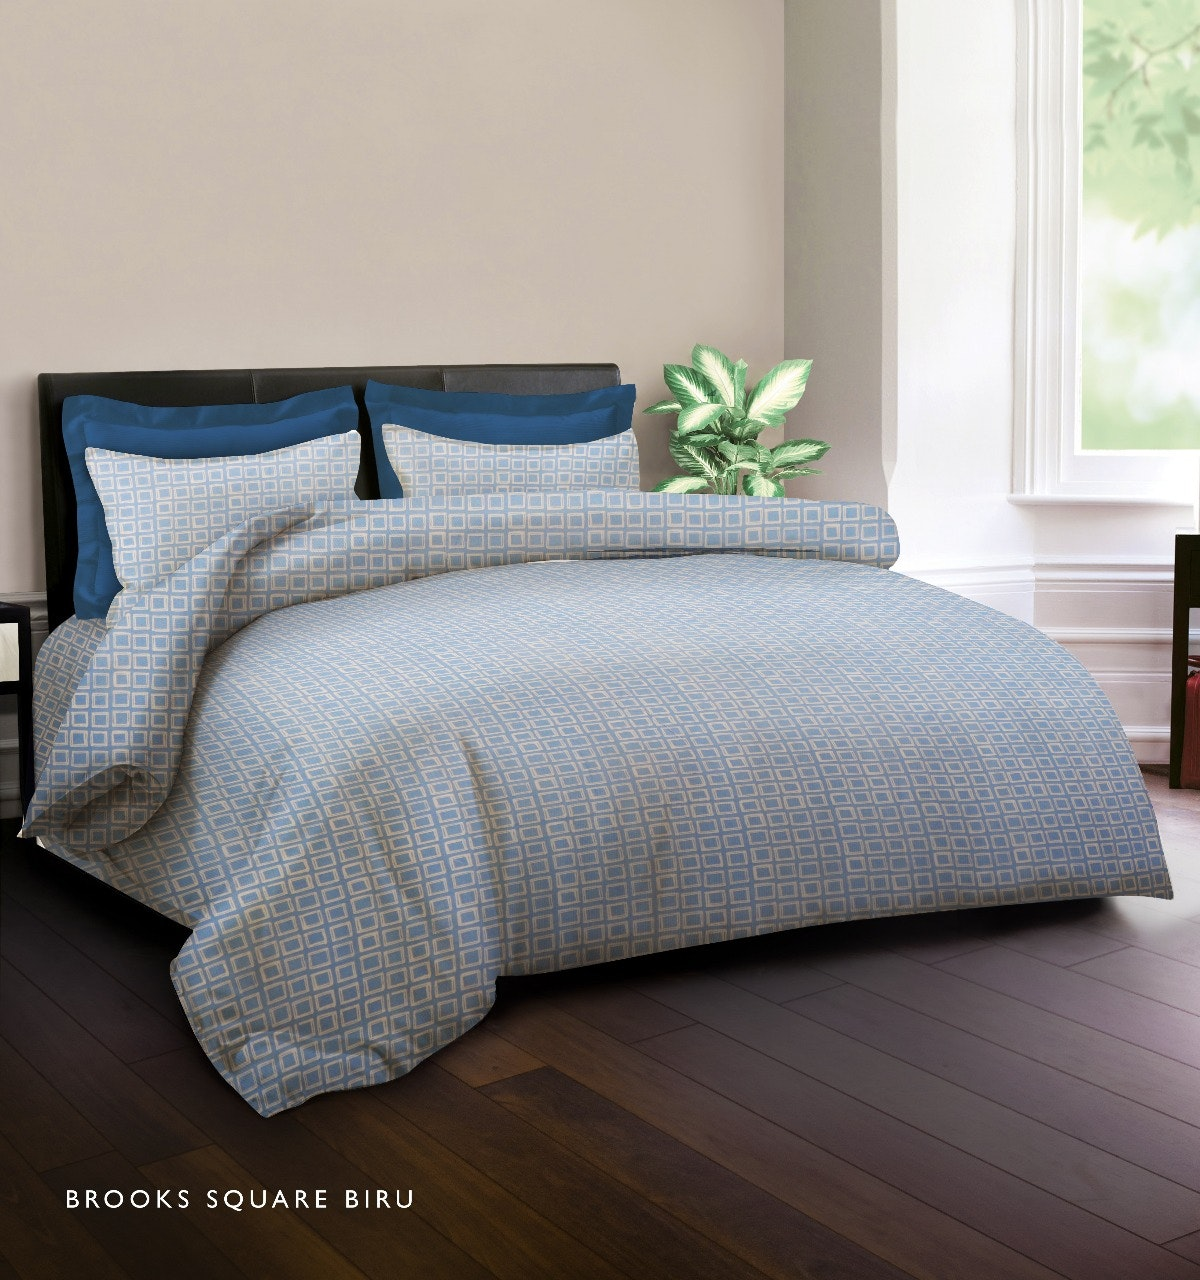 King Rabbit Set Sprei Sarung Bantal King Motif Brooks Square - Biru Uk 180x200x40 cm